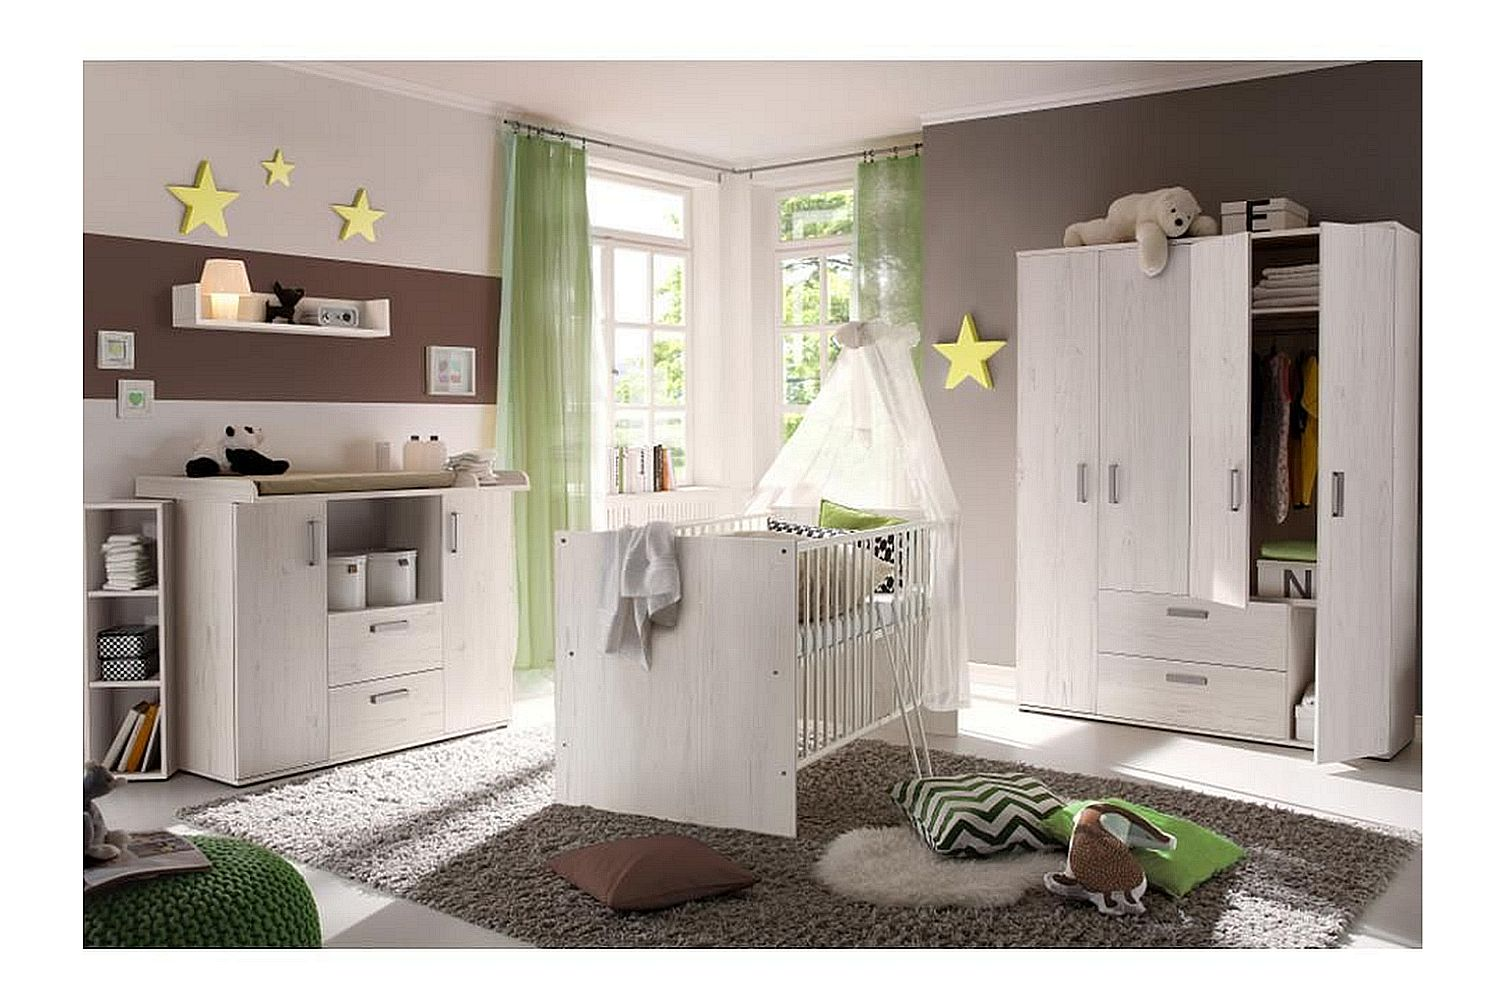 babybett babyzimmer komplett wickelkommode kinderzimmer set neu komplettzimmer ebay. Black Bedroom Furniture Sets. Home Design Ideas